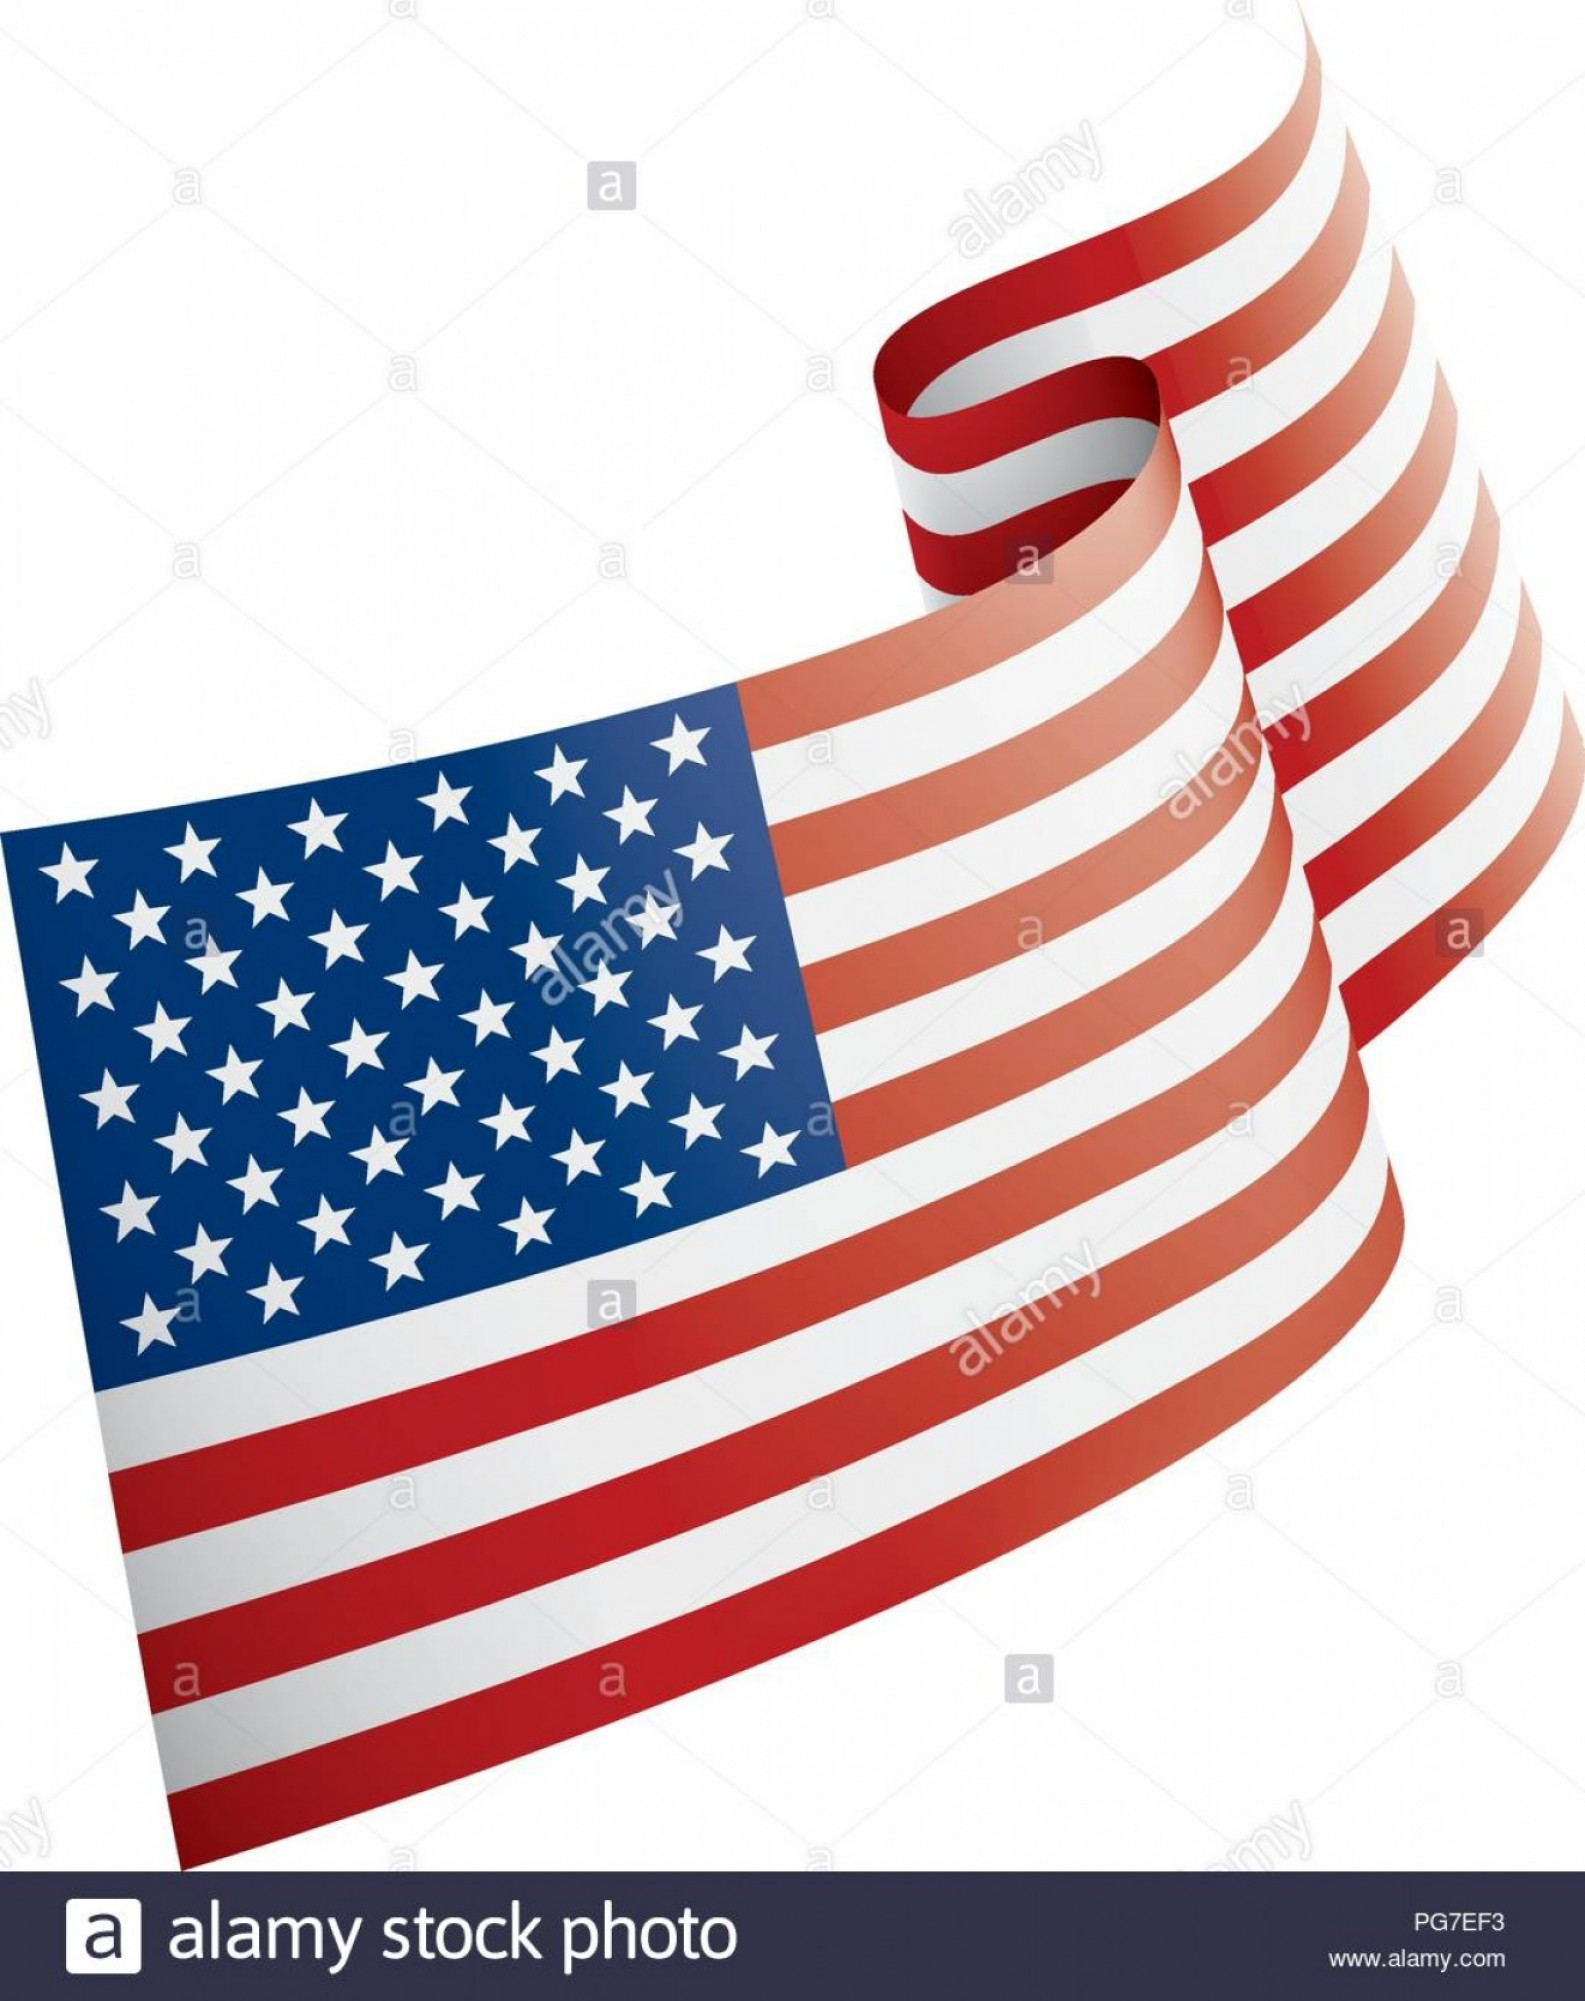 Rustic American Flag Vector: Usa Flag Vector Illustration On A White Background Image